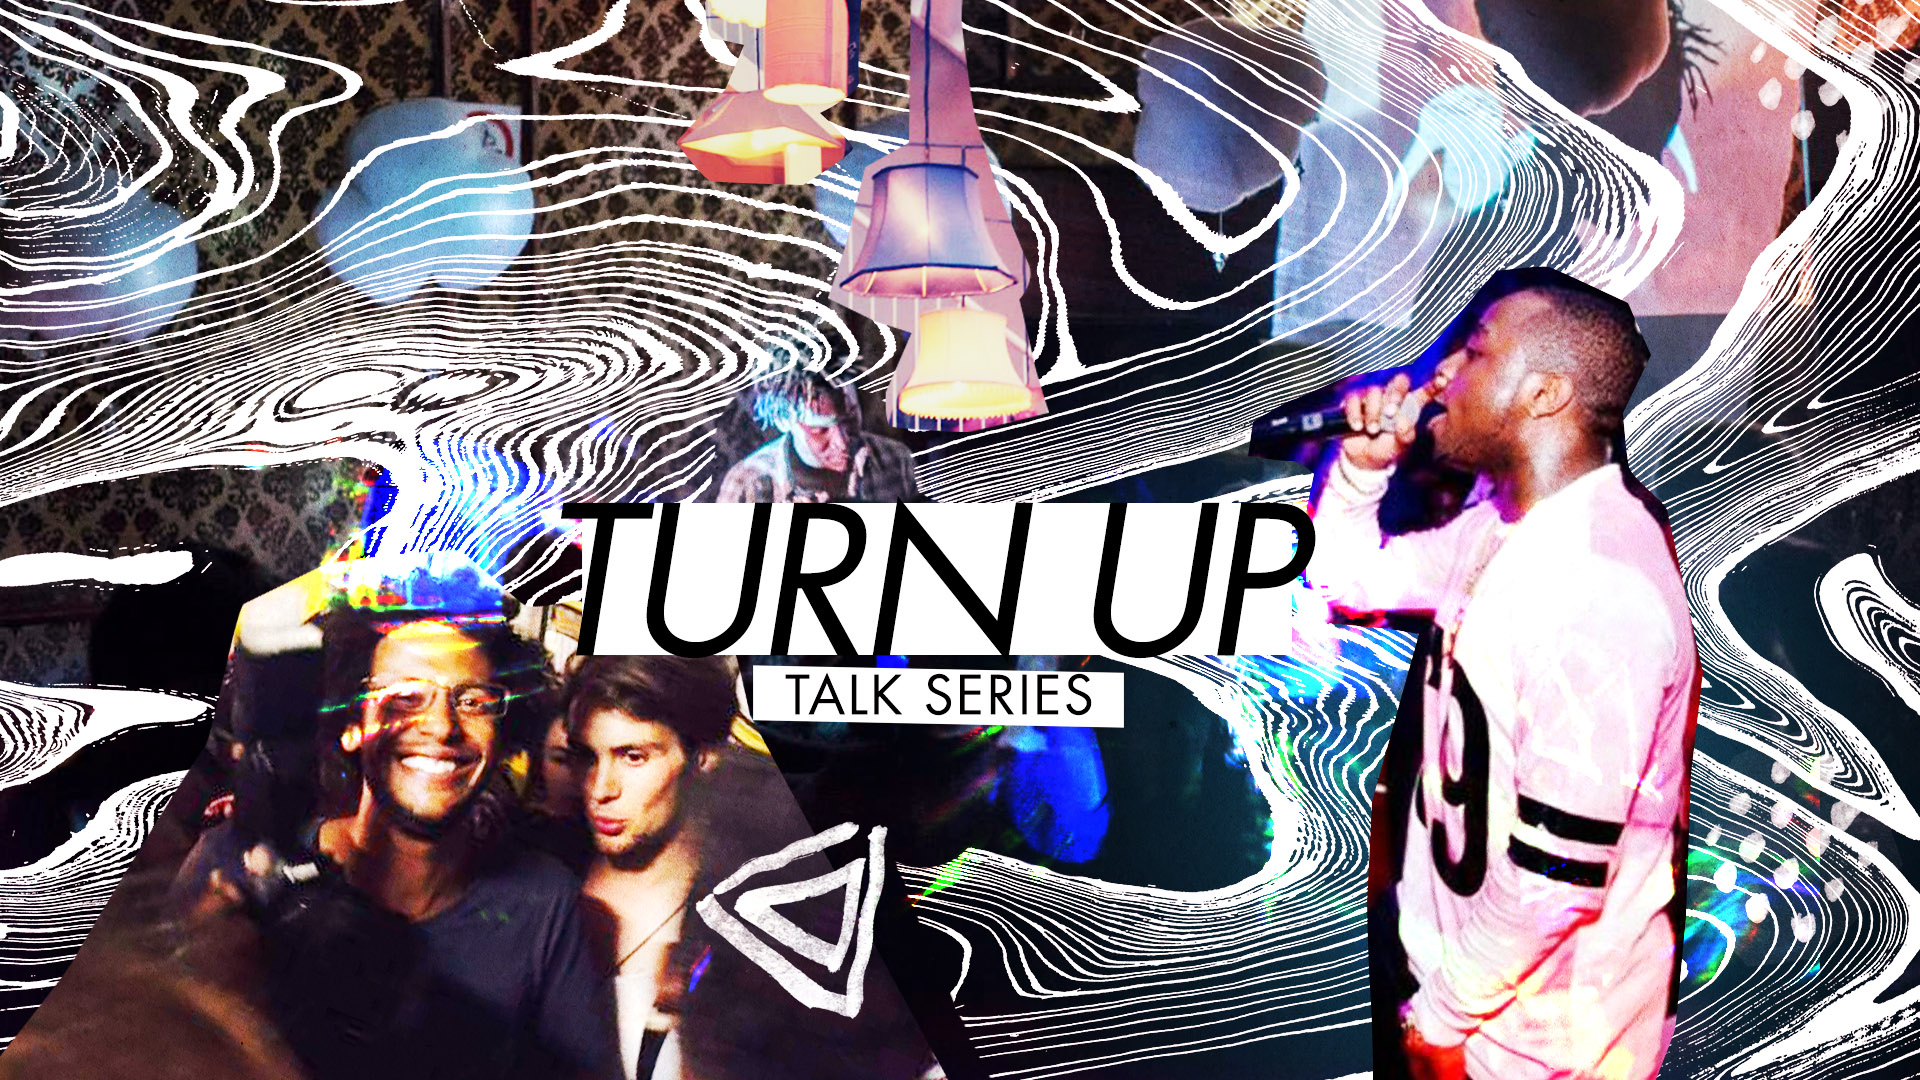 Turn-up Talk Series Episode 3 - Artwork by  - Lex Trickett